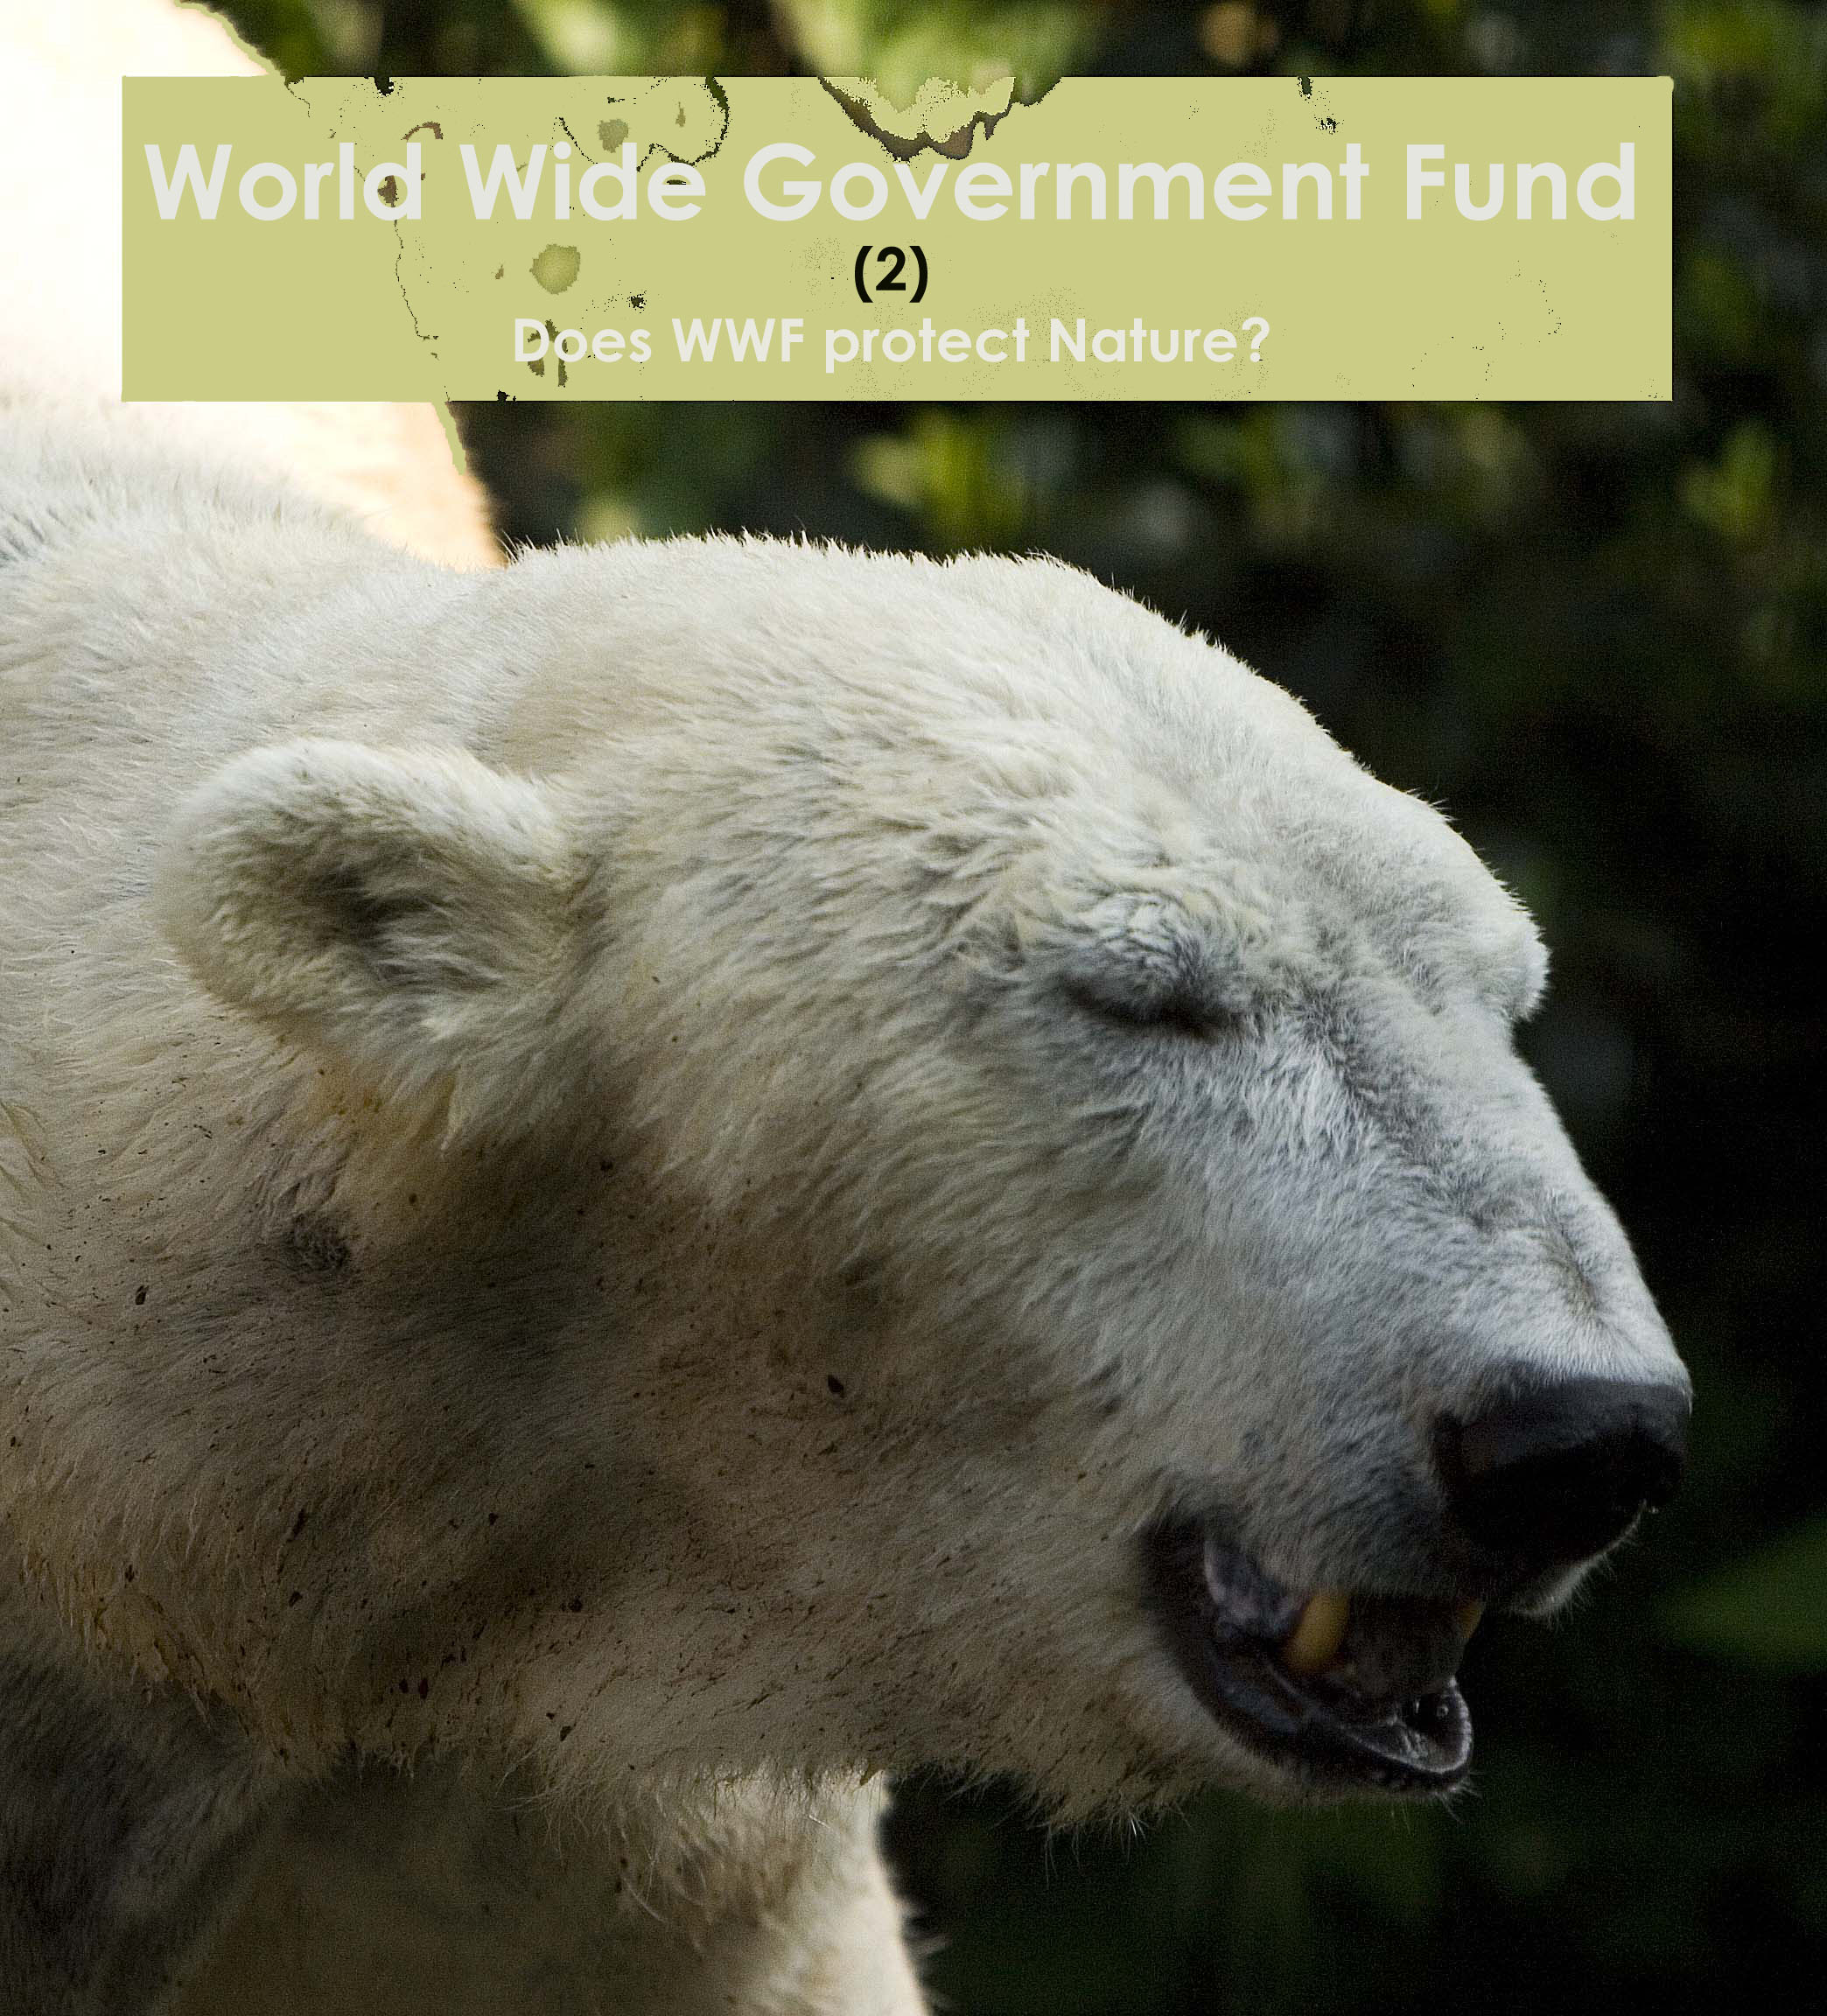 The WWF does not mention the hundreds of polar bears shot for hunting tourism annually, but advocates 'saving' the species in the most expensive and ineffective way